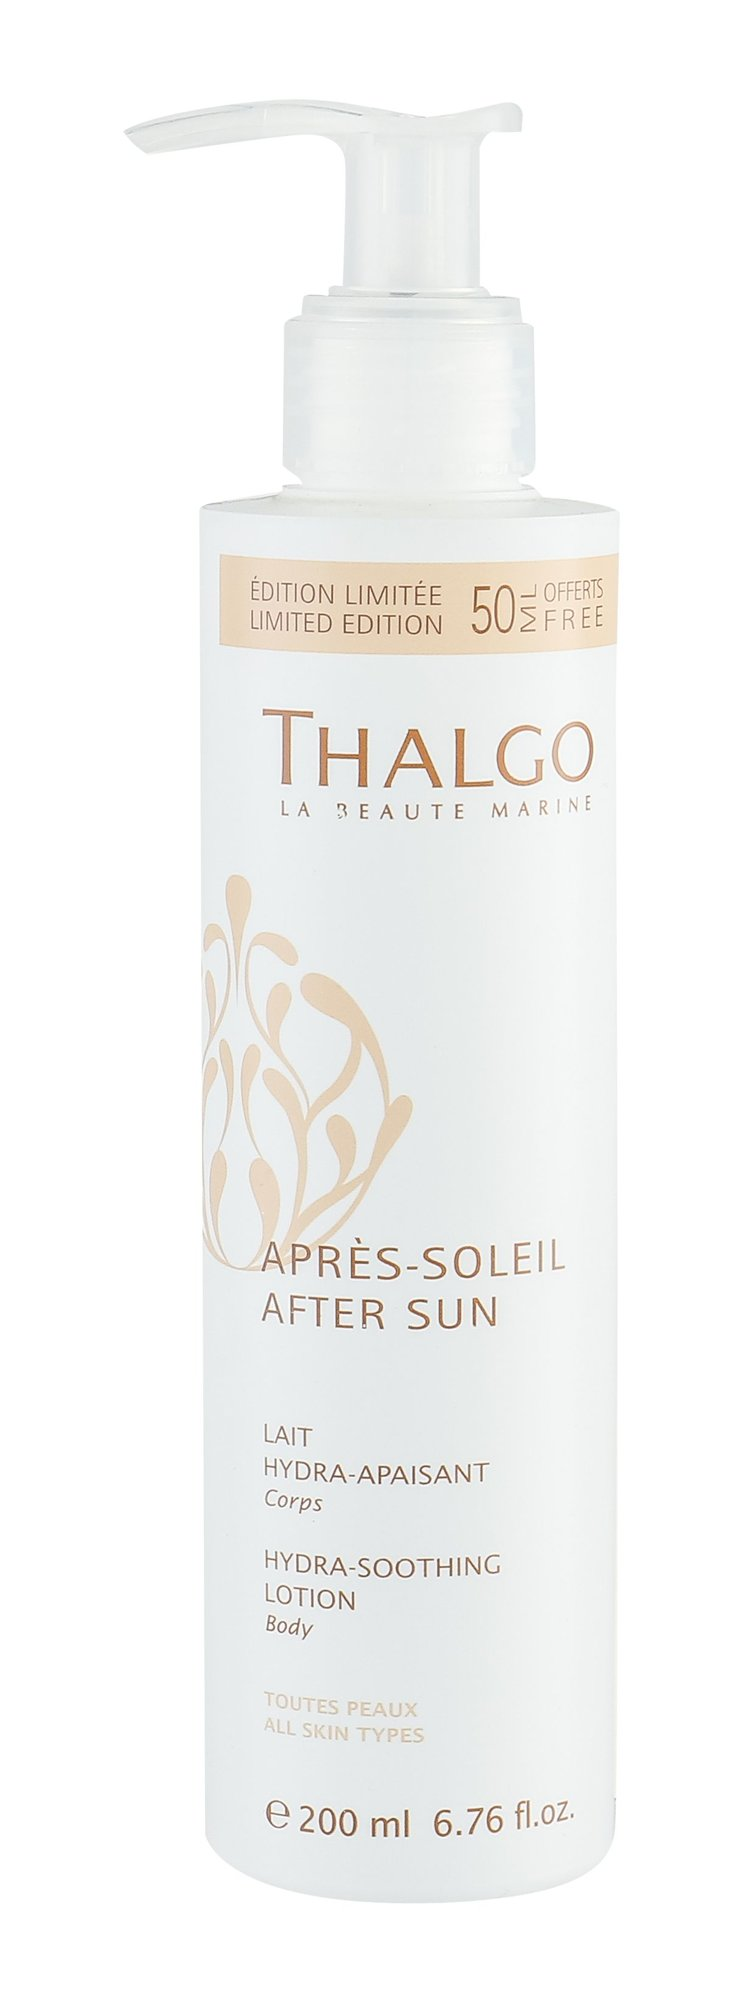 Thalgo After Sun After Sun Care 200ml